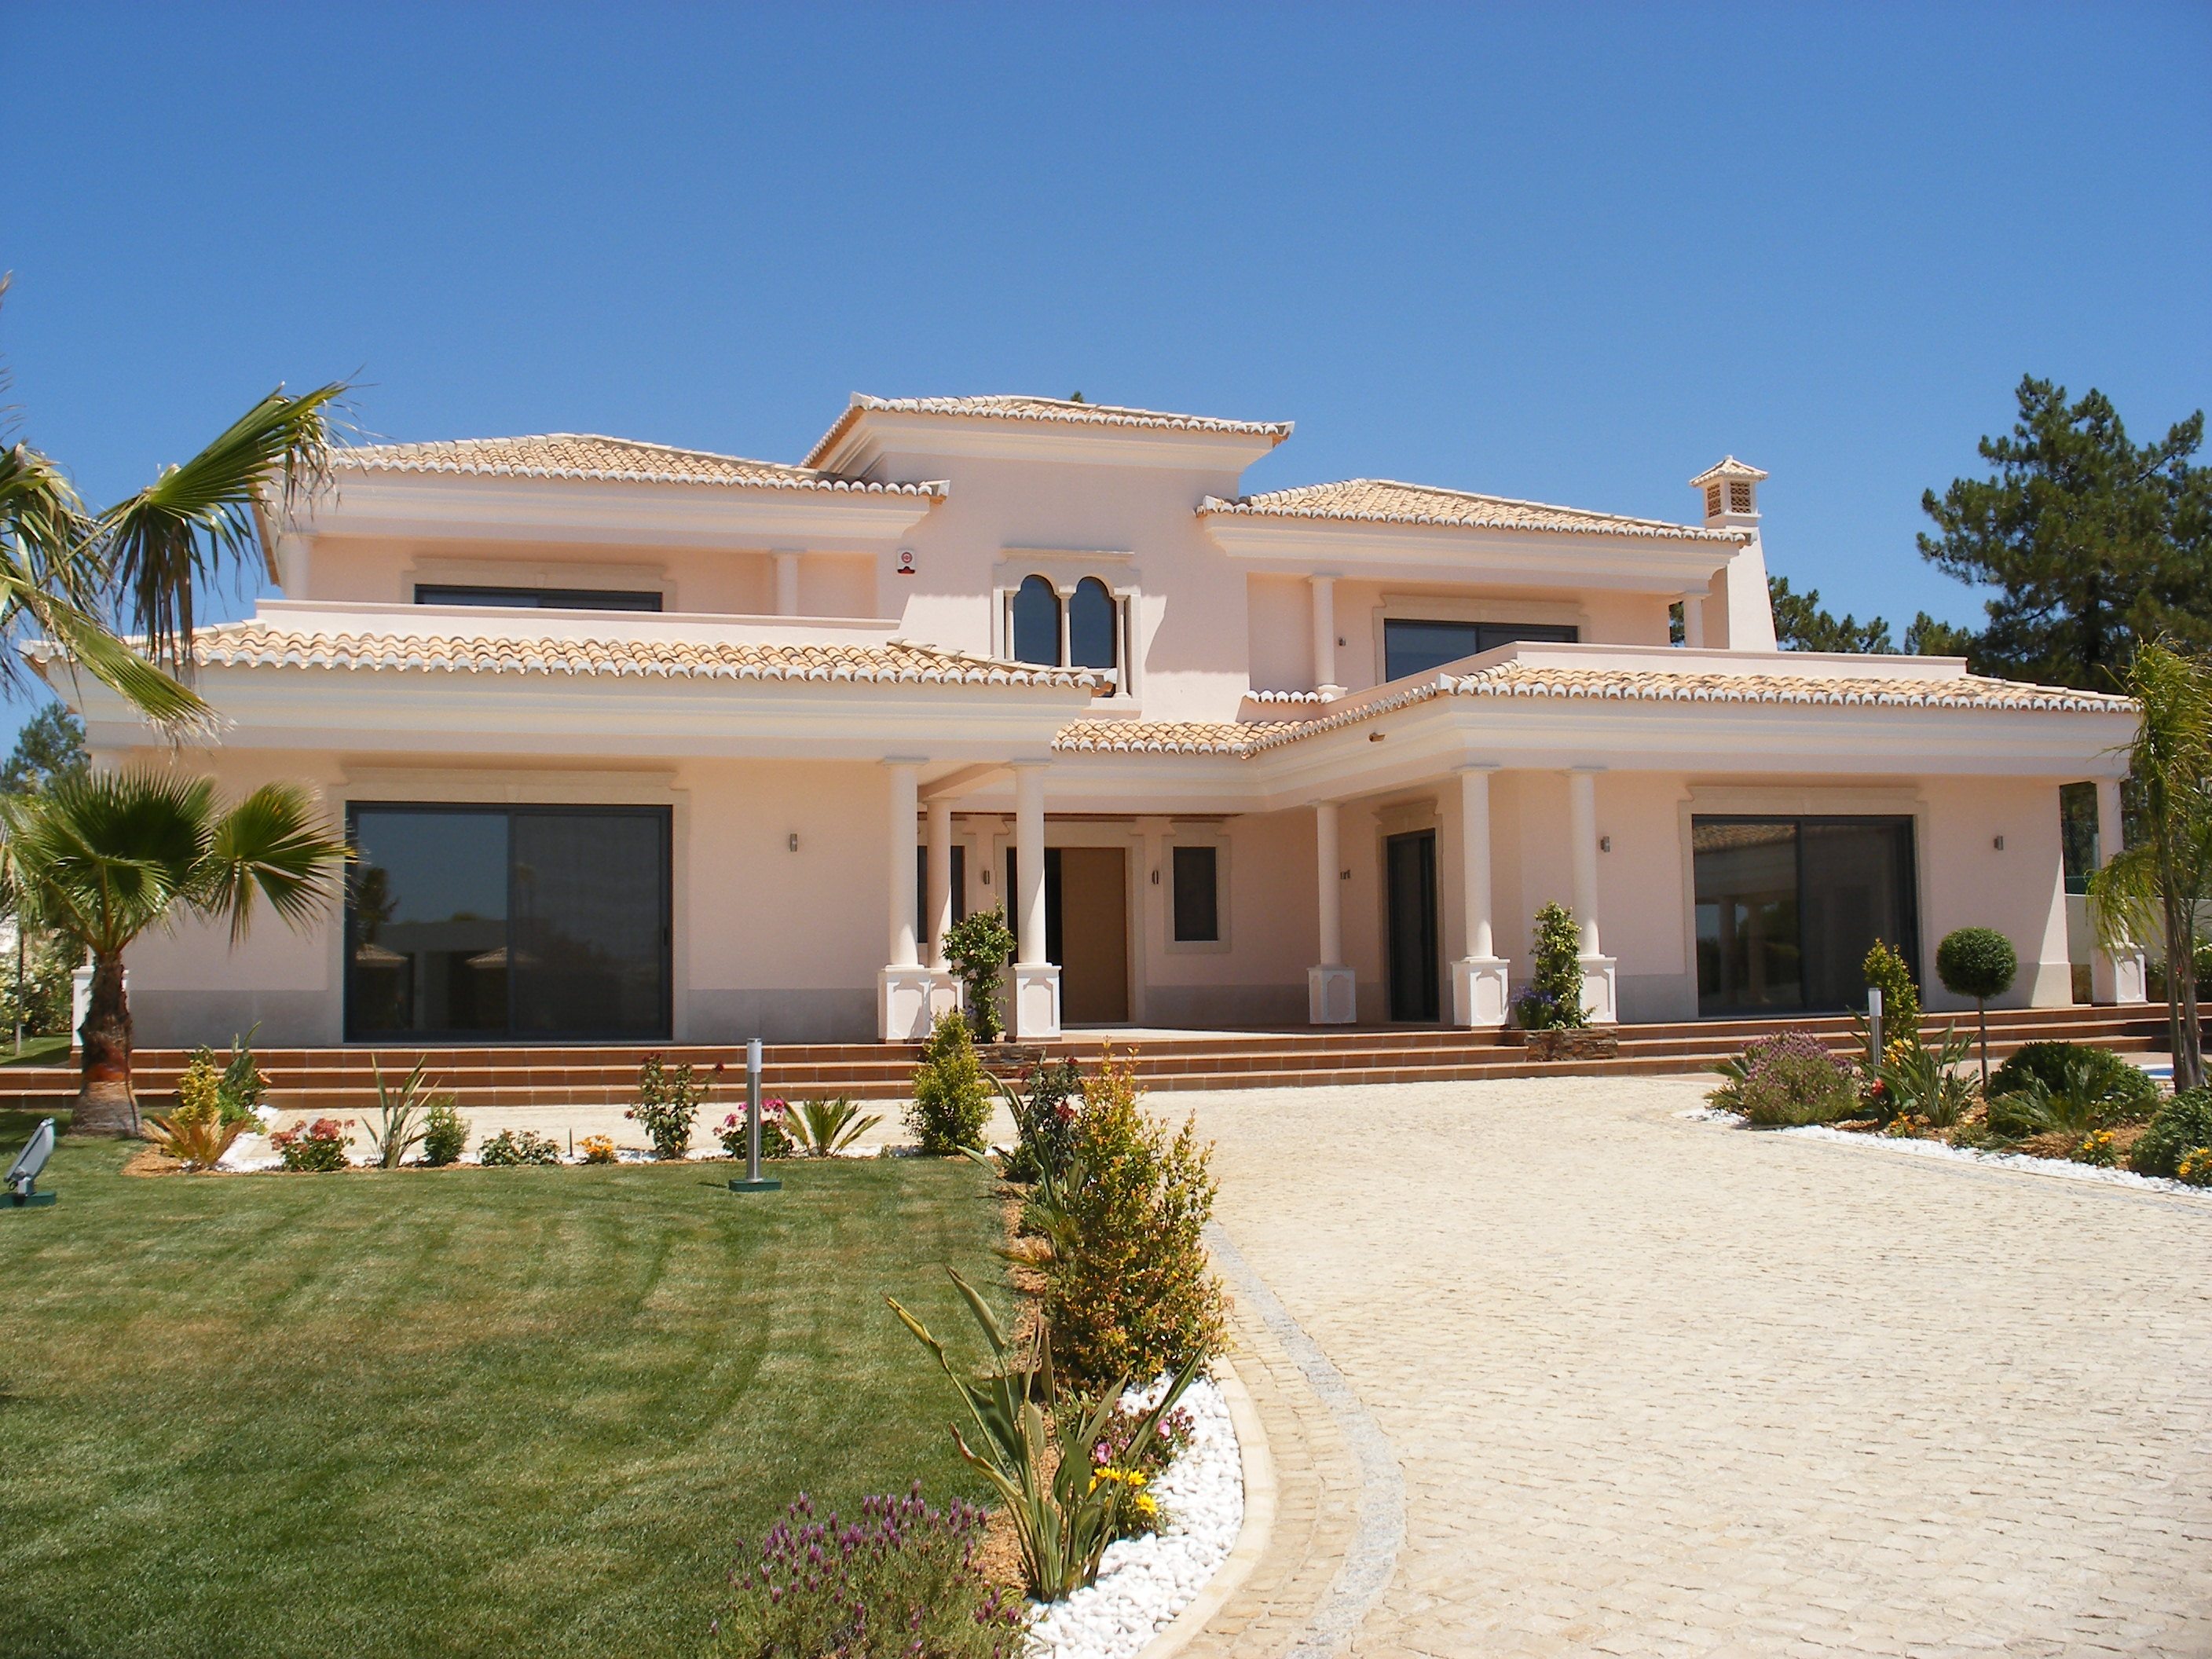 Vale do lobo luxury villas and houses for sale over 1 for Cheap luxury homes